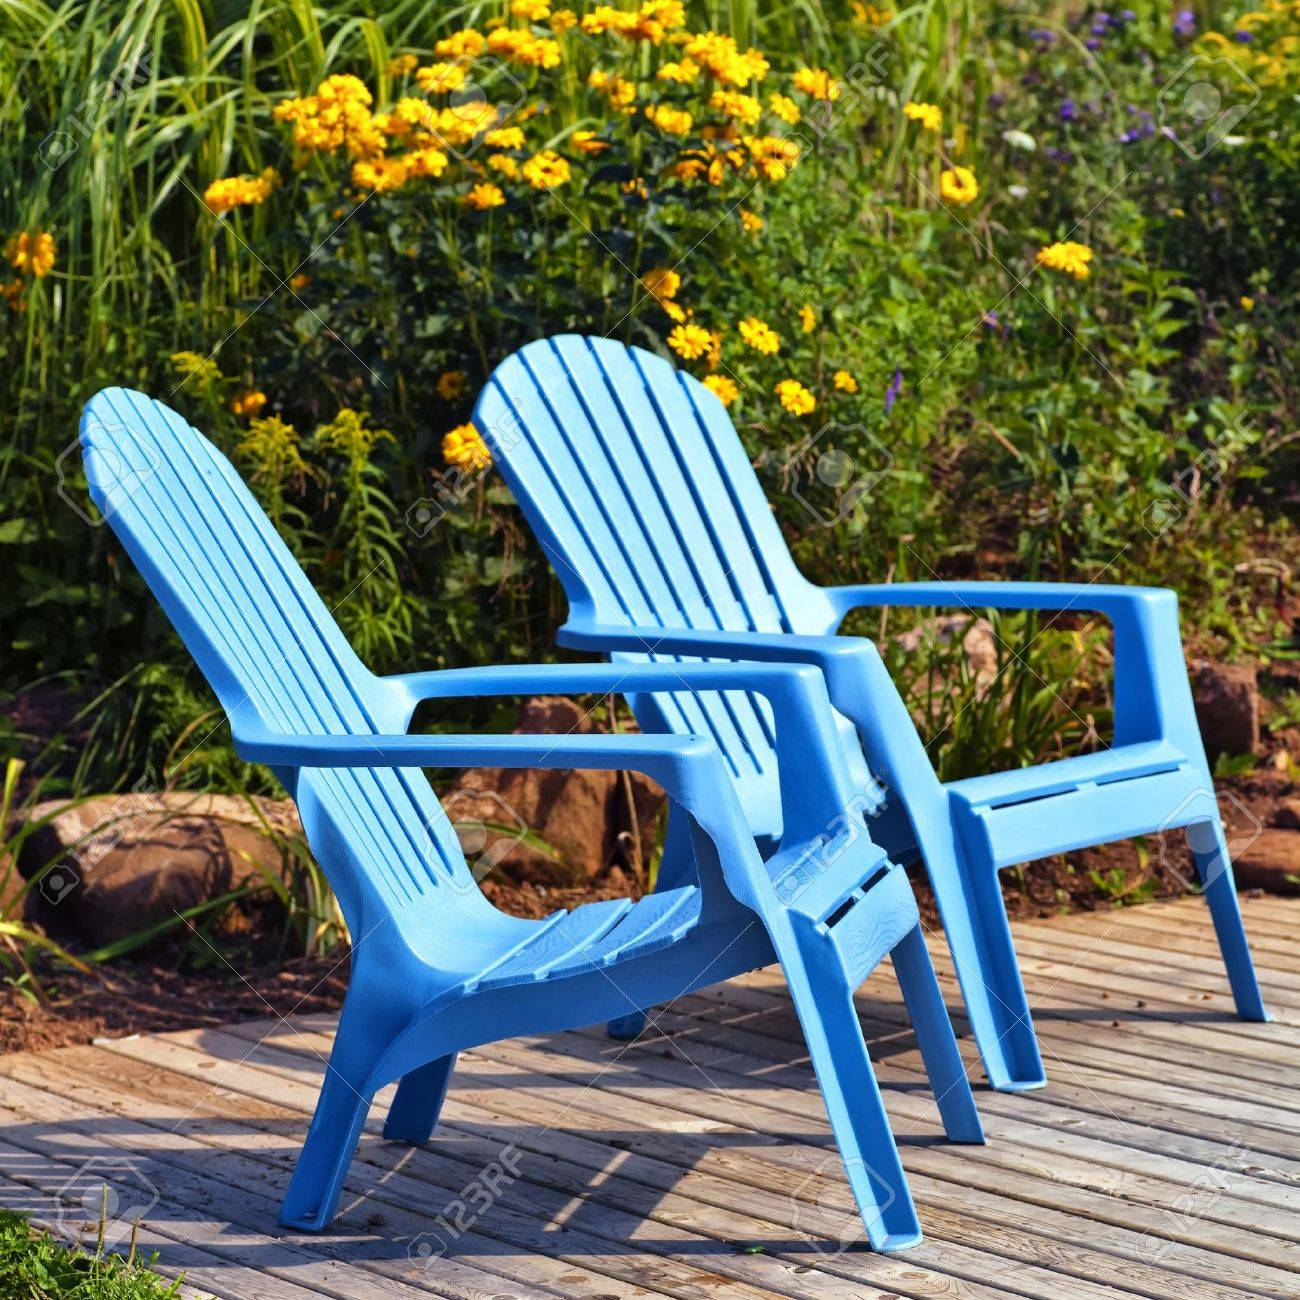 brilliant blue plastic outdoor adirondack chairs on the deck in a summer garden stock photo - Adirondack Chairs Plastic